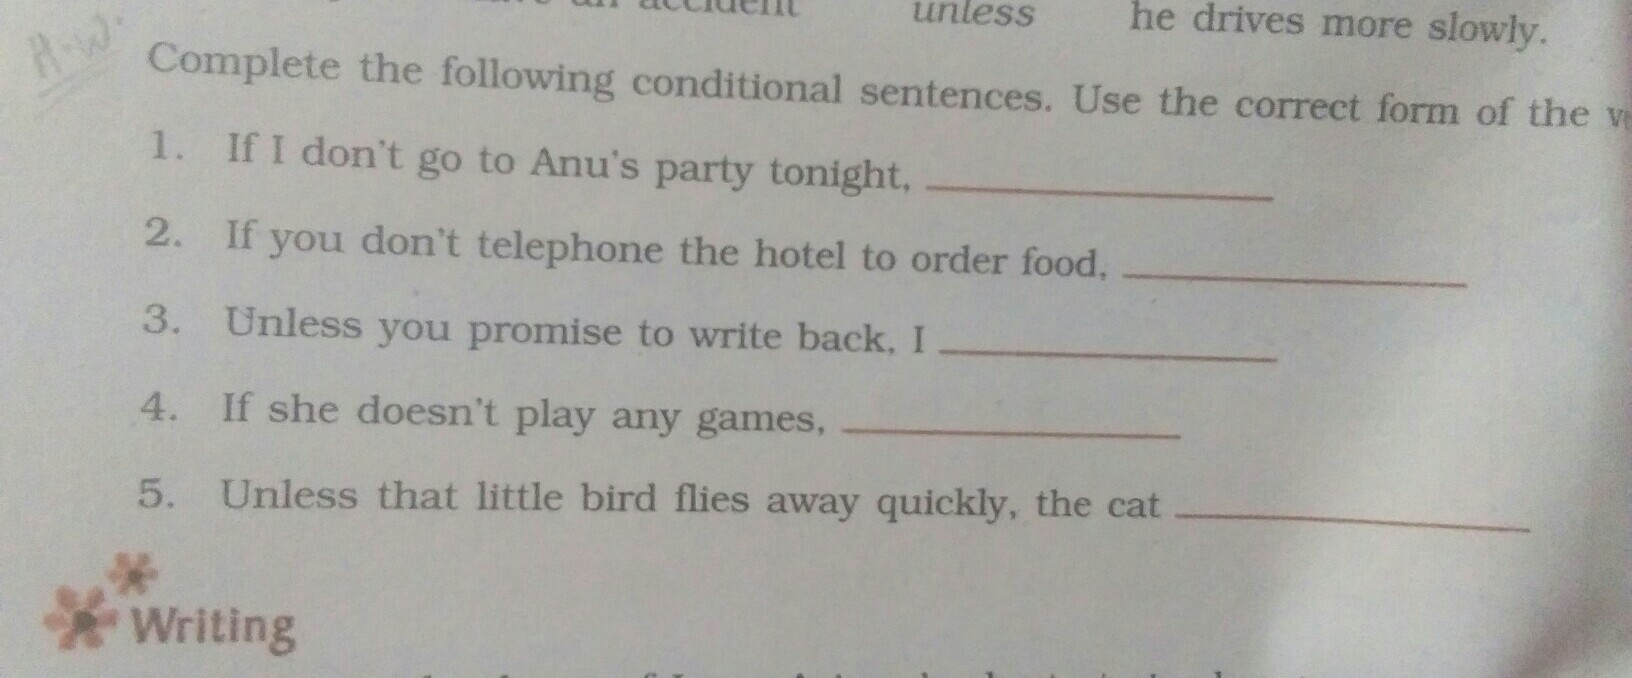 Complete The Following Conditional Sentences And Use The Correct